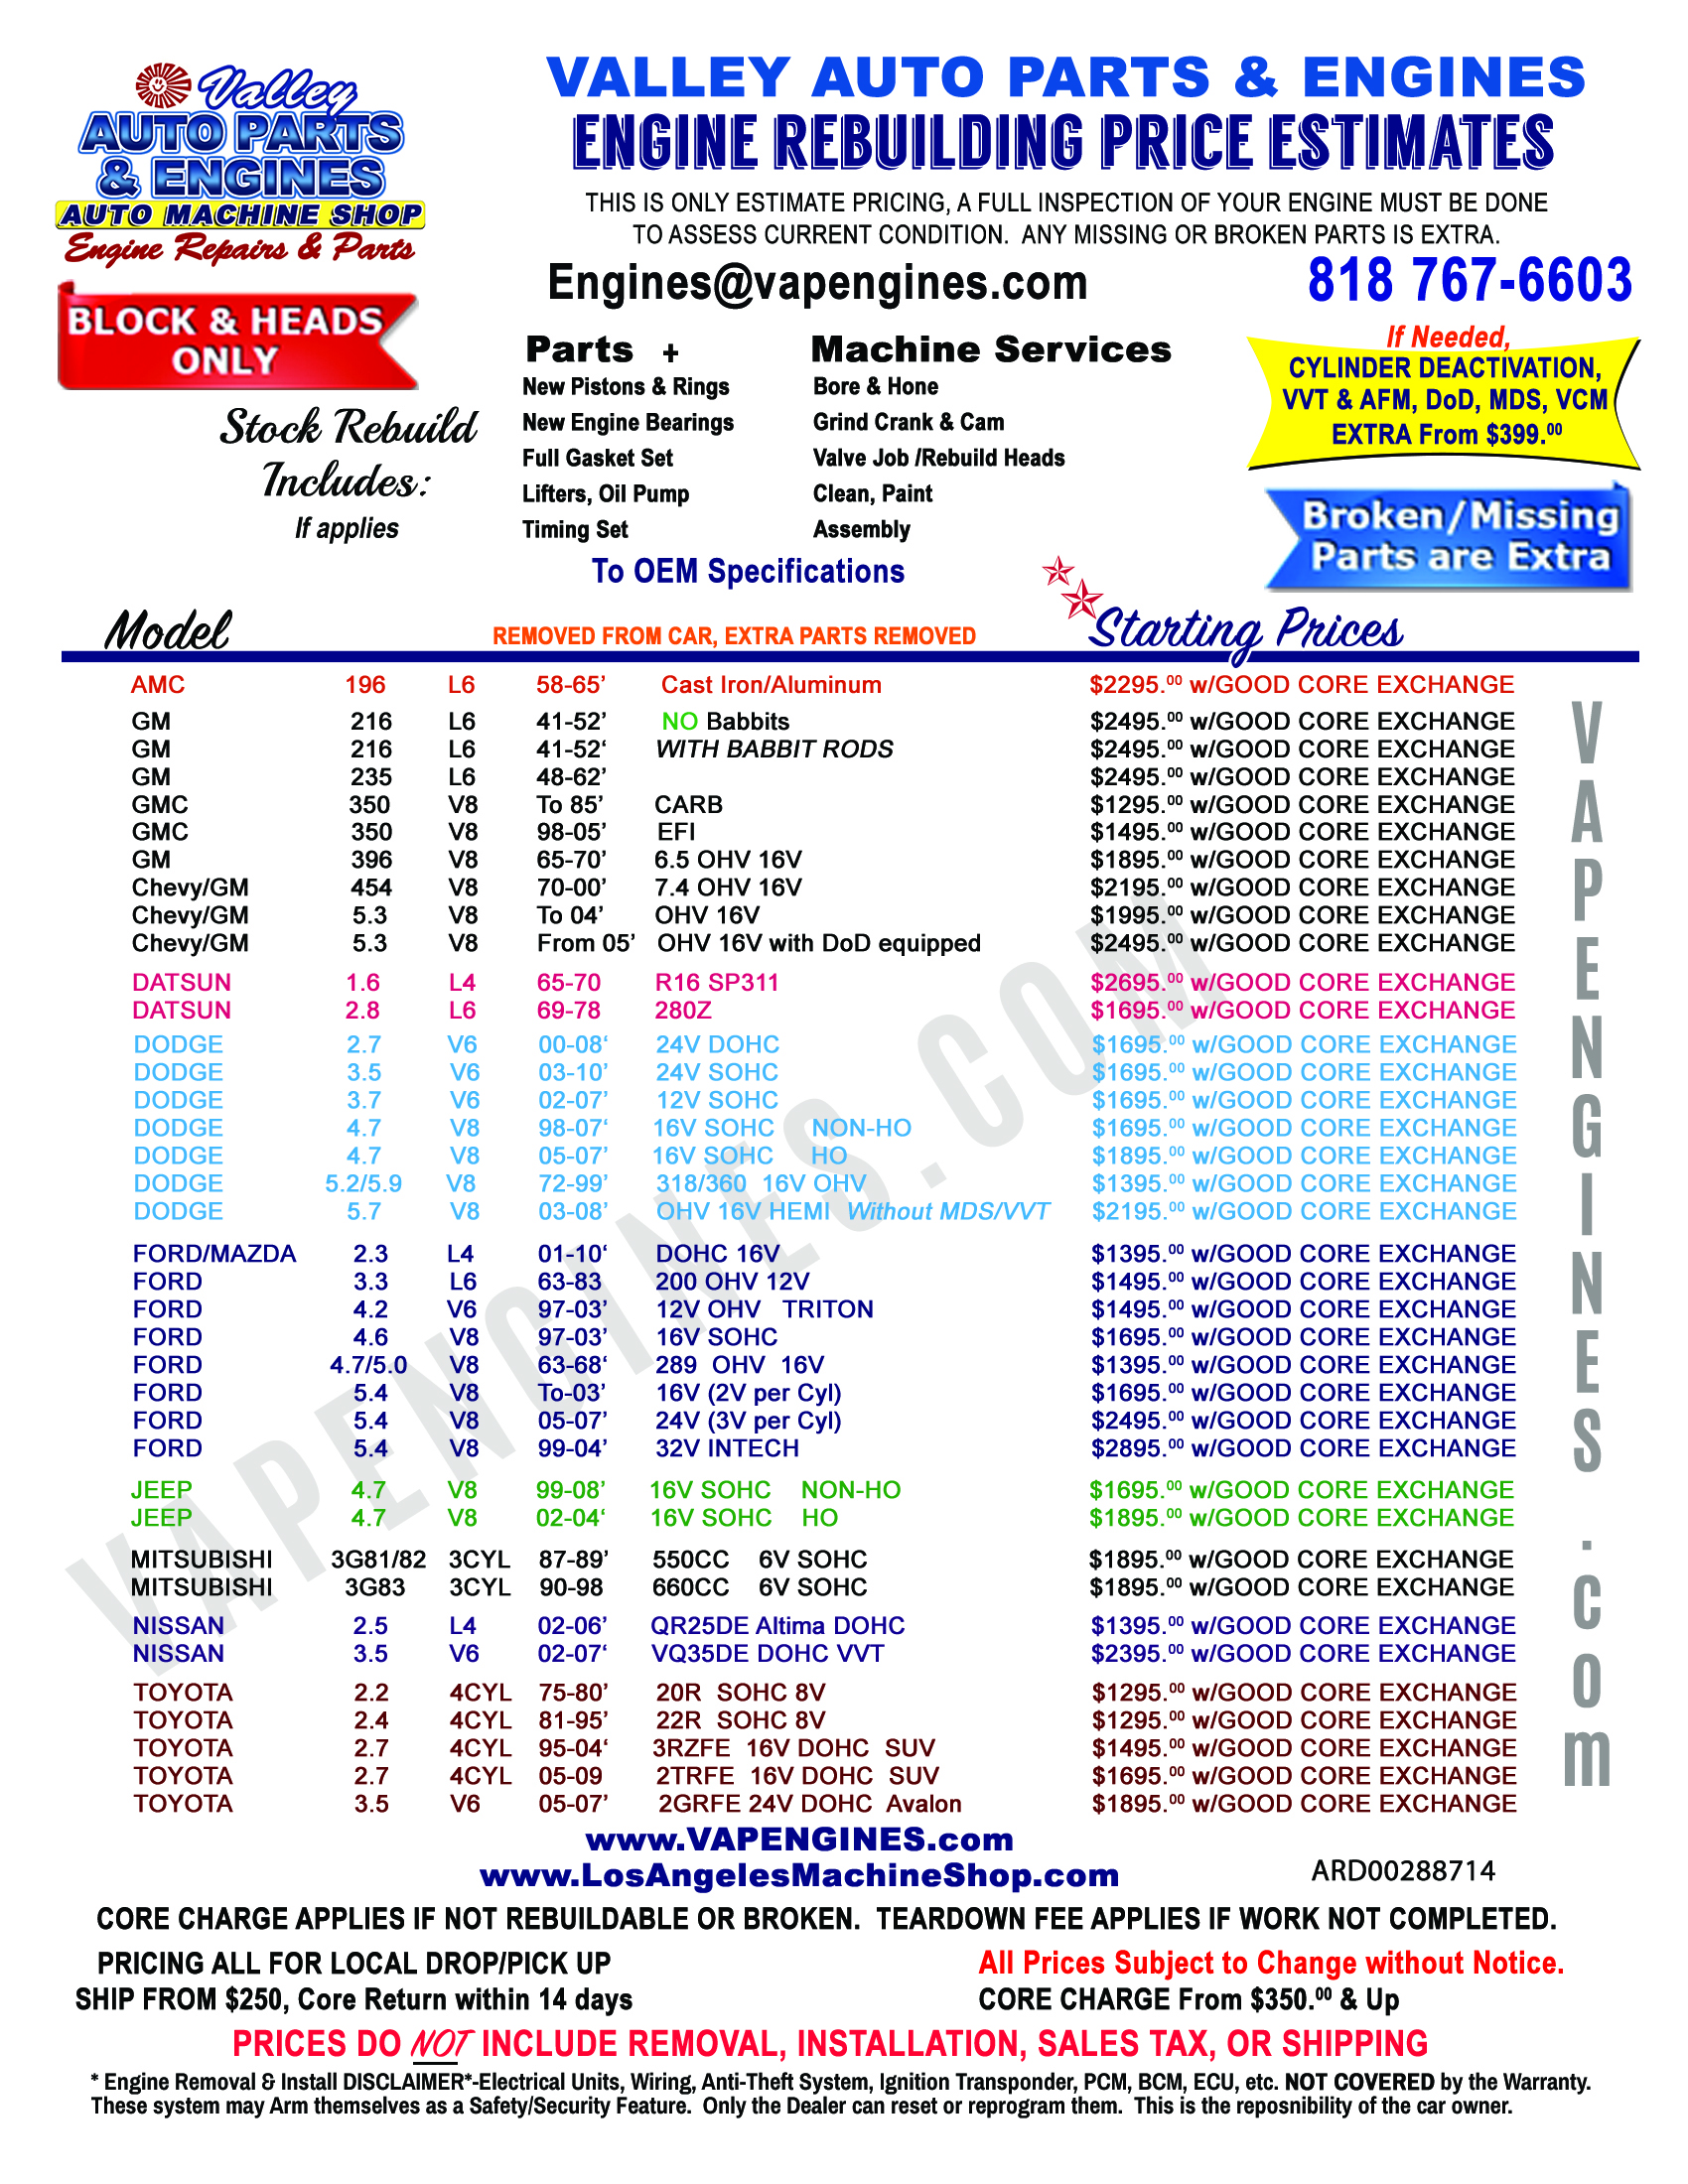 Ford Engine Rebuilding Price Cost Estimate Sheet